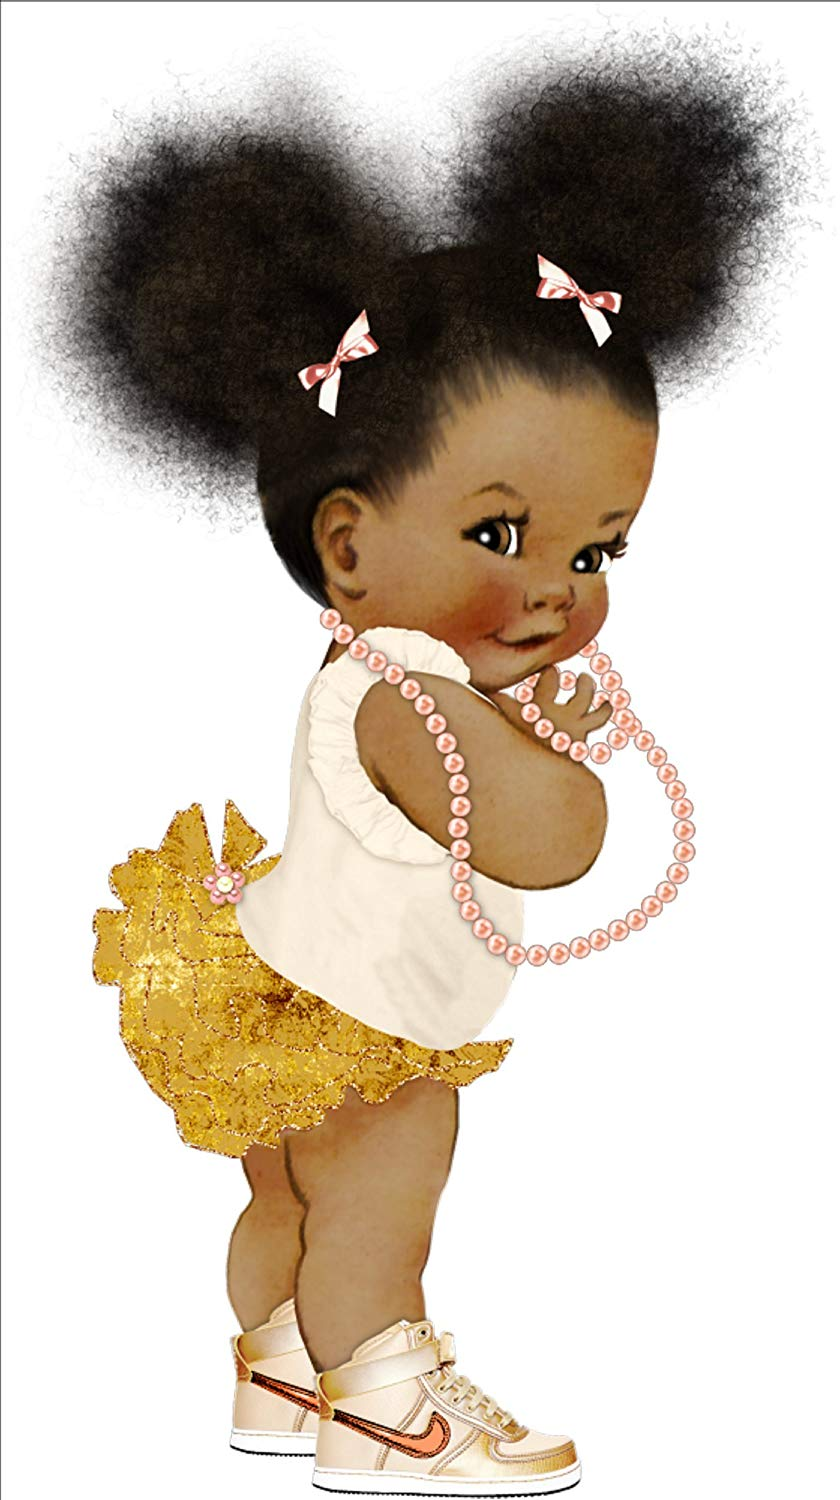 Princess edible baby shower cake topper, afro puffs baby, african american  baby shower cake, princess baby shower (6 Inch Tall).